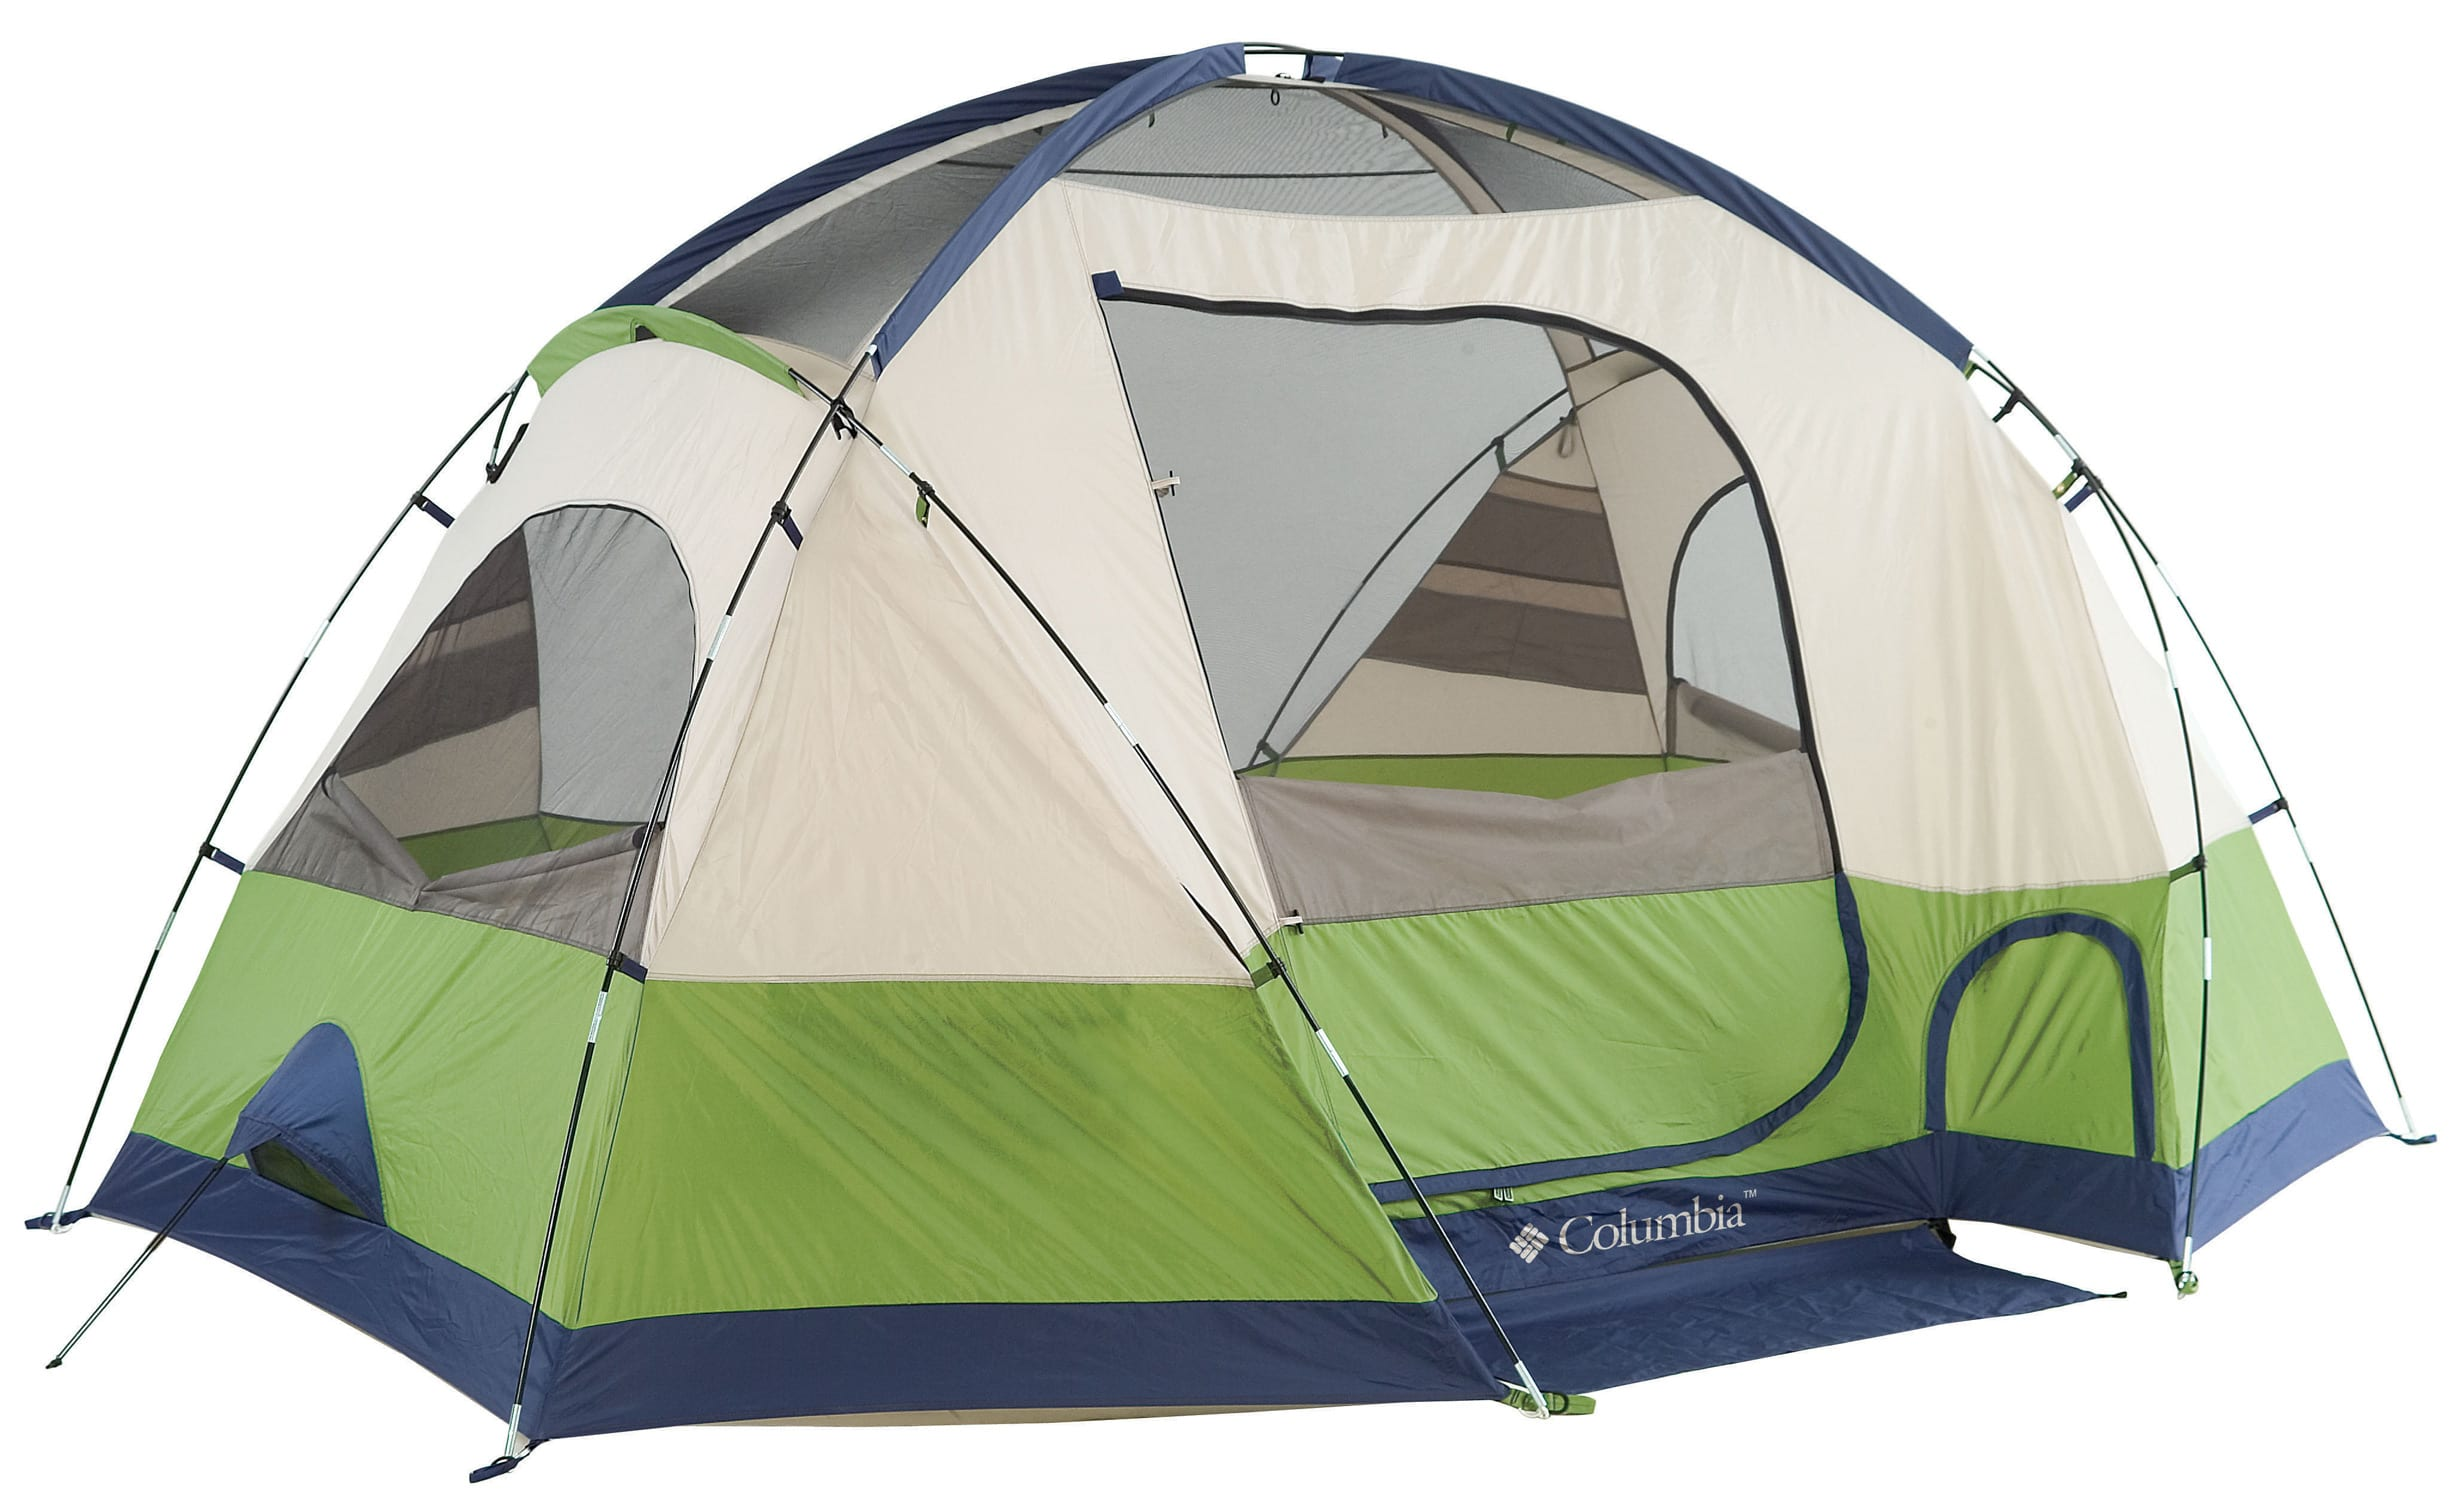 Columbia Black Mountain 5 Person Tent - thumbnail 2  sc 1 st  The House & On Sale Columbia Black Mountain 5 Person Tent up to 70% off